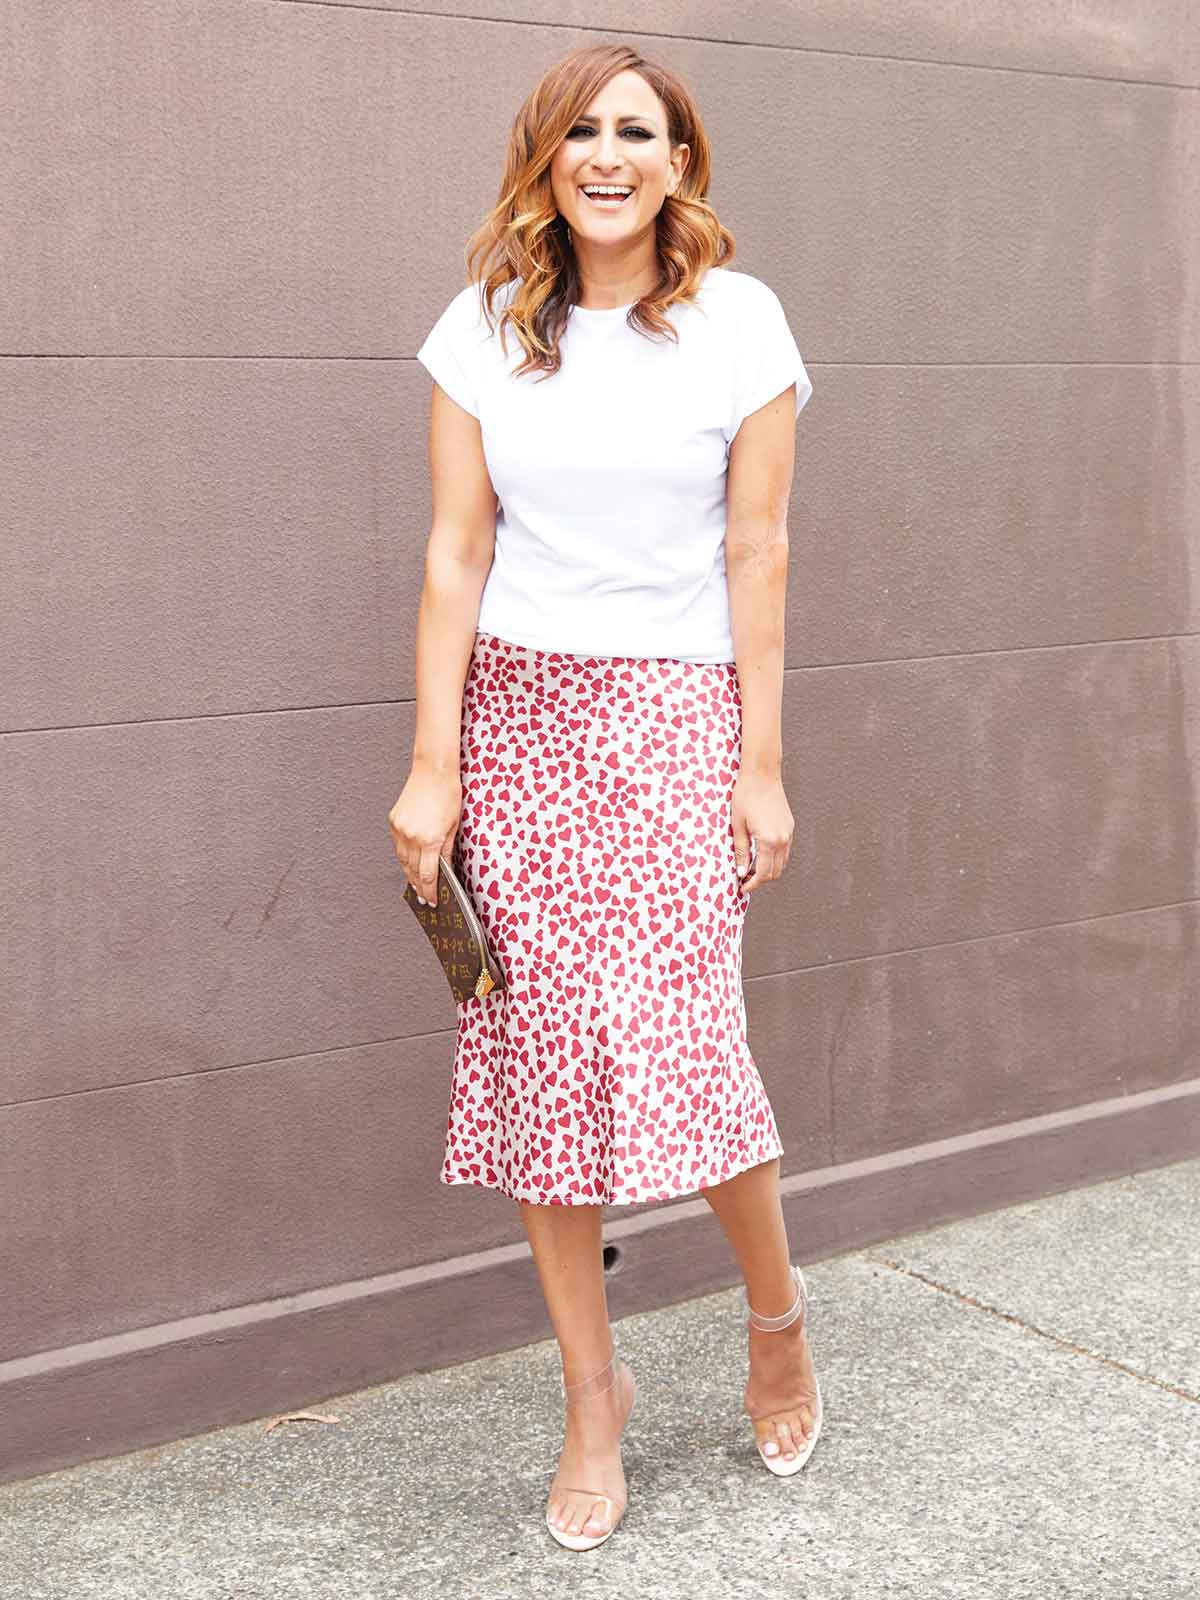 WHAT THE HEART WANTS PRINT SKIRT